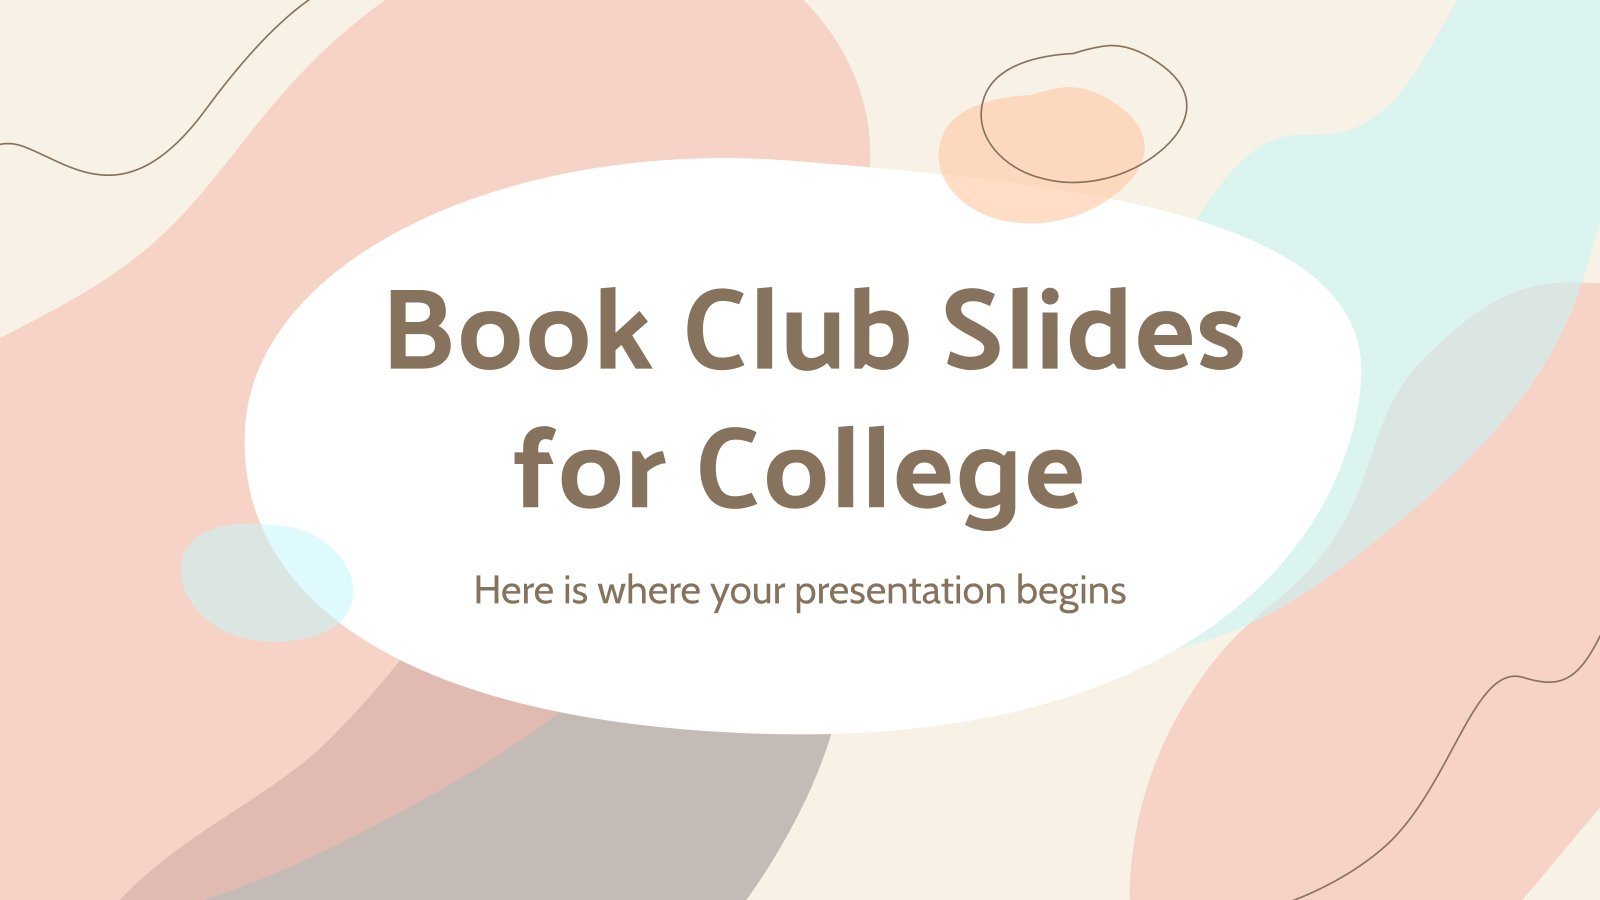 Book Club Slides for College presentation template